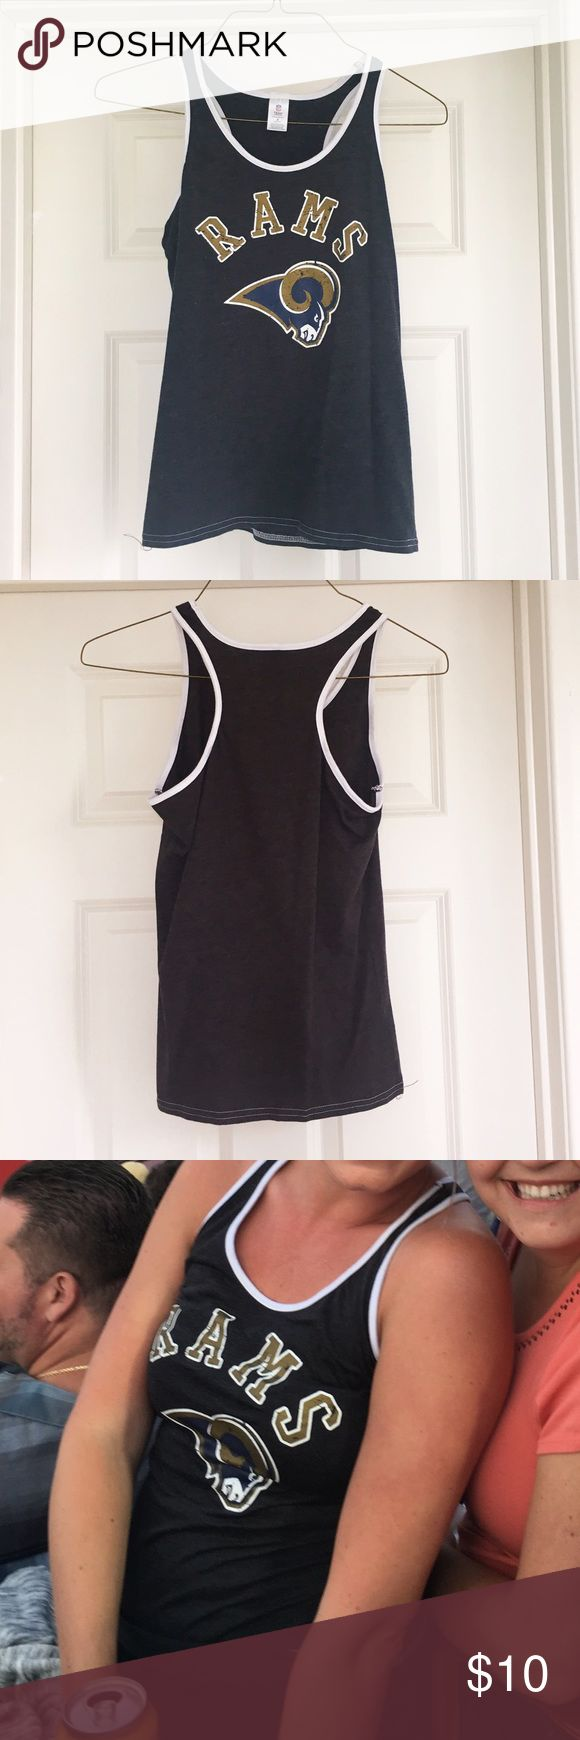 LOS ANGELES RAMS 🐑 TANK TOP Worn once to game.  NFL official Rams tank top- women's small.  Very cute top. NFL Team Store Tops Tank Tops